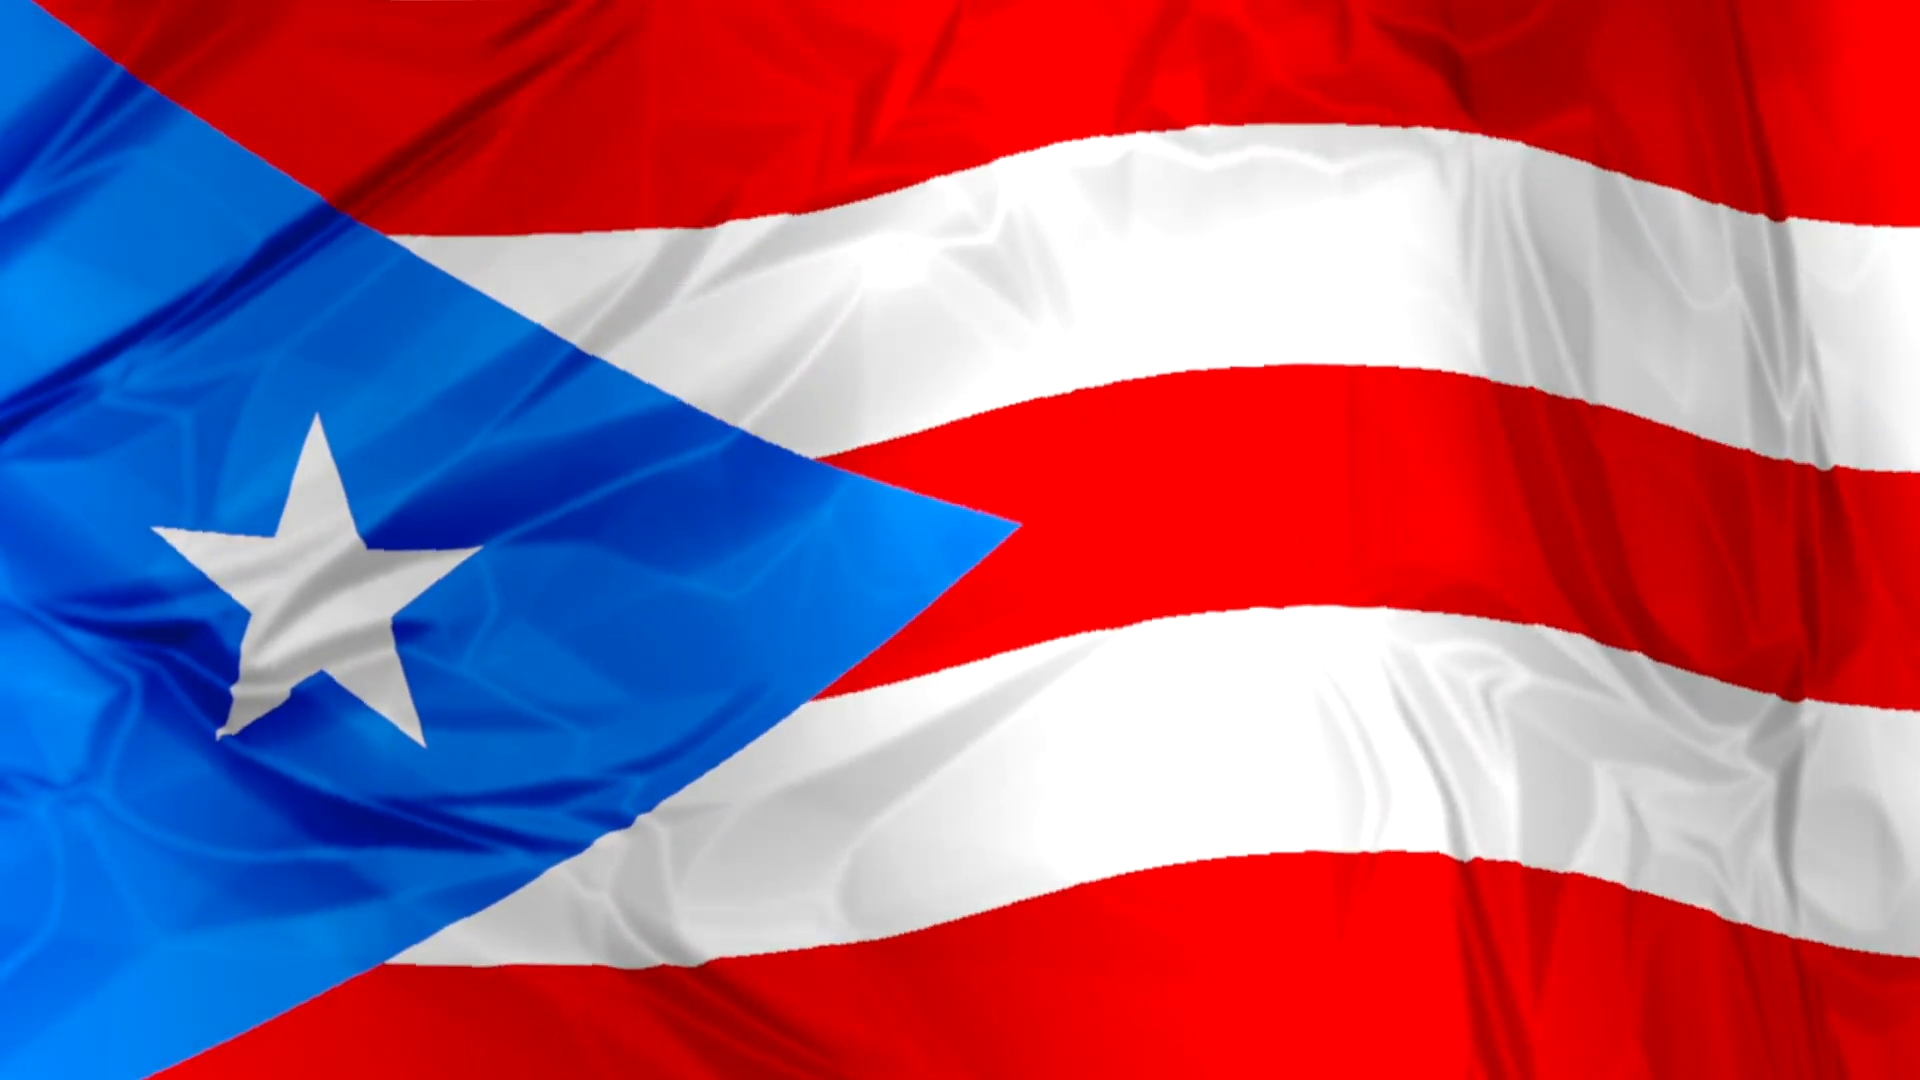 3d waving puerto rico flag background red, blue and white colors